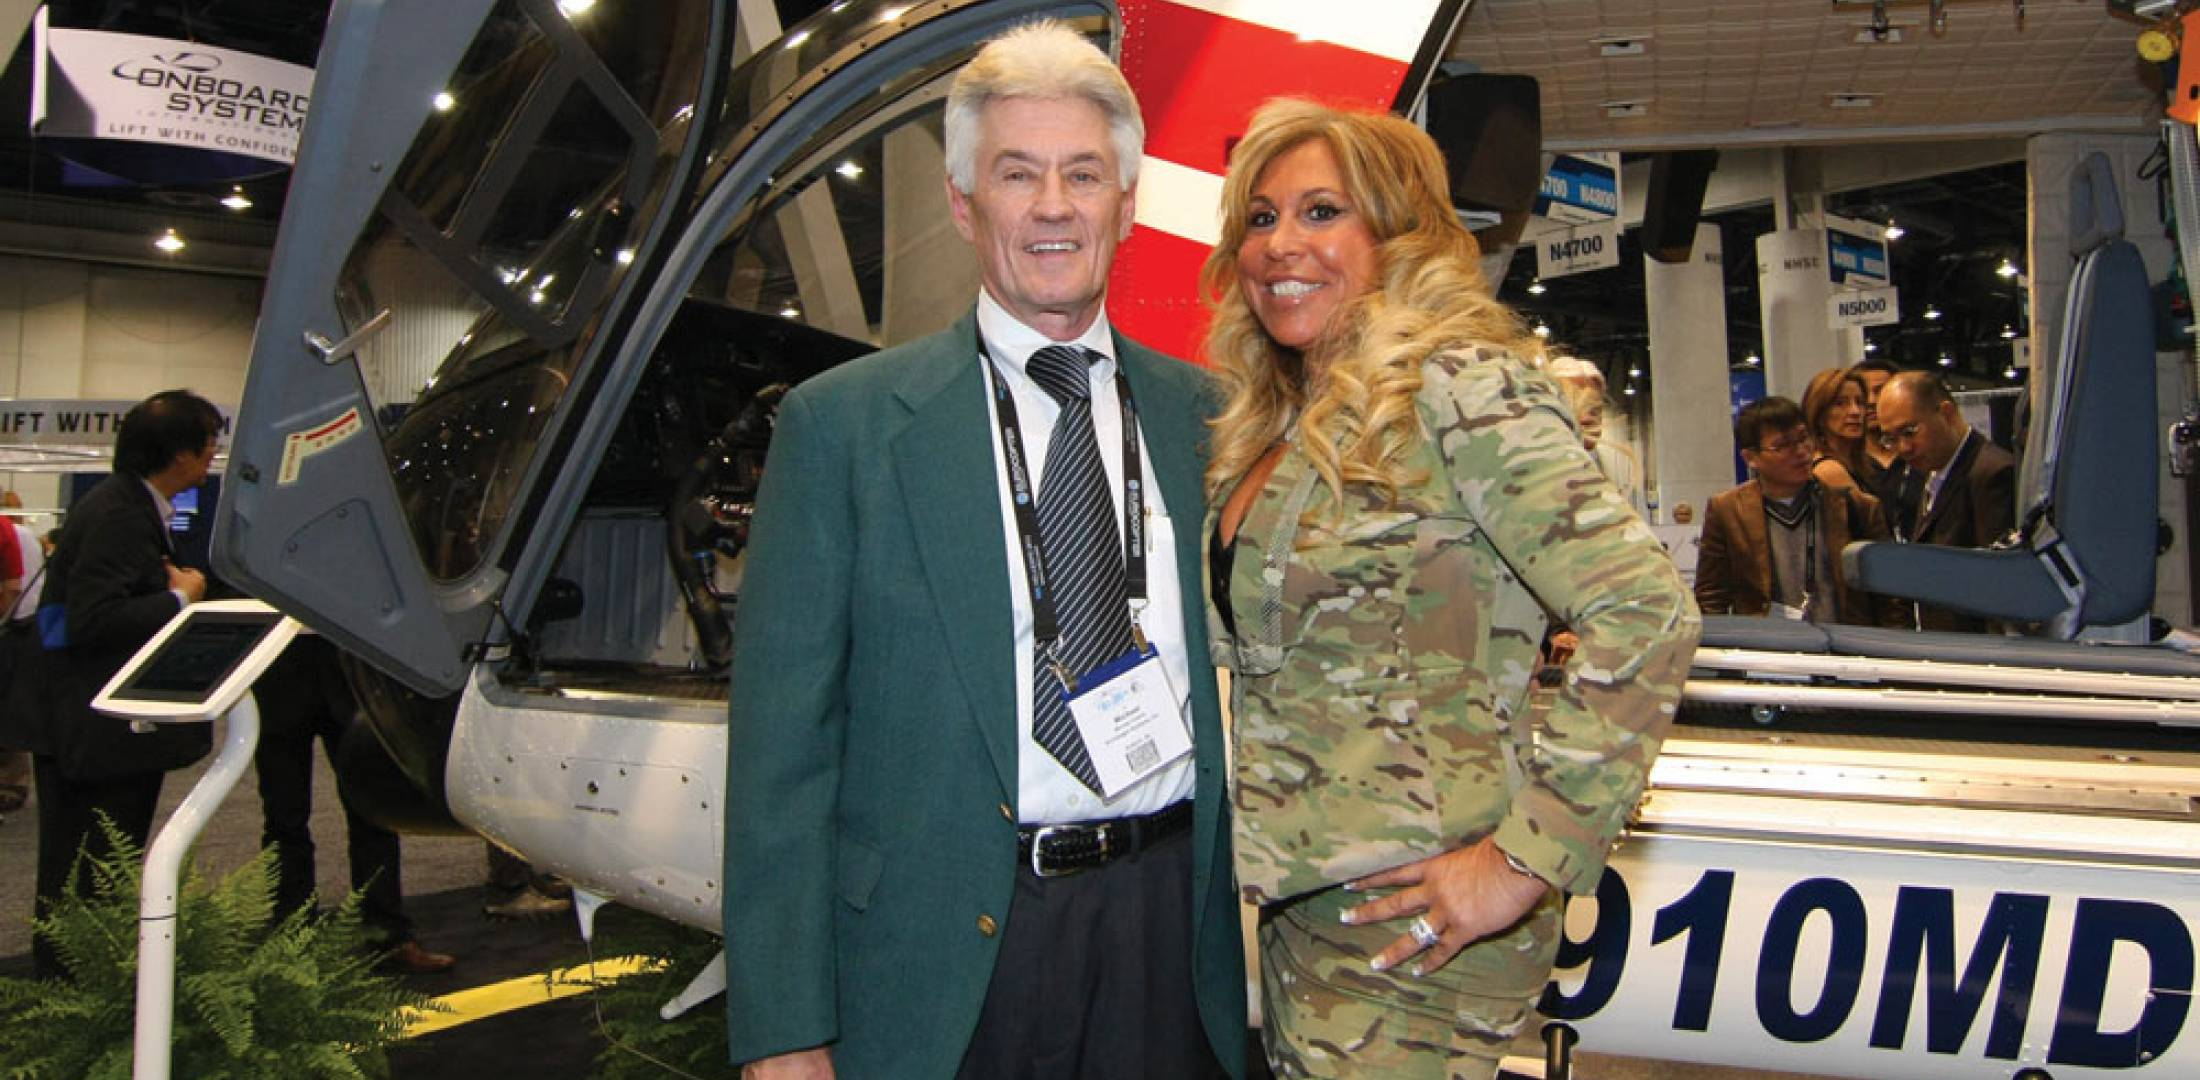 lynn tilton md helicopters with Archangel Exhibiting First Time Heli Expo on Heli Expo 2017 The Future Is Fast Approaching furthermore 7C 7Cmy Moonraker   7Clynn Tilton 216 further Seen Heli Expo 2015 slide 10 Field images 1271541 likewise Topic as well Lynn Tilton.